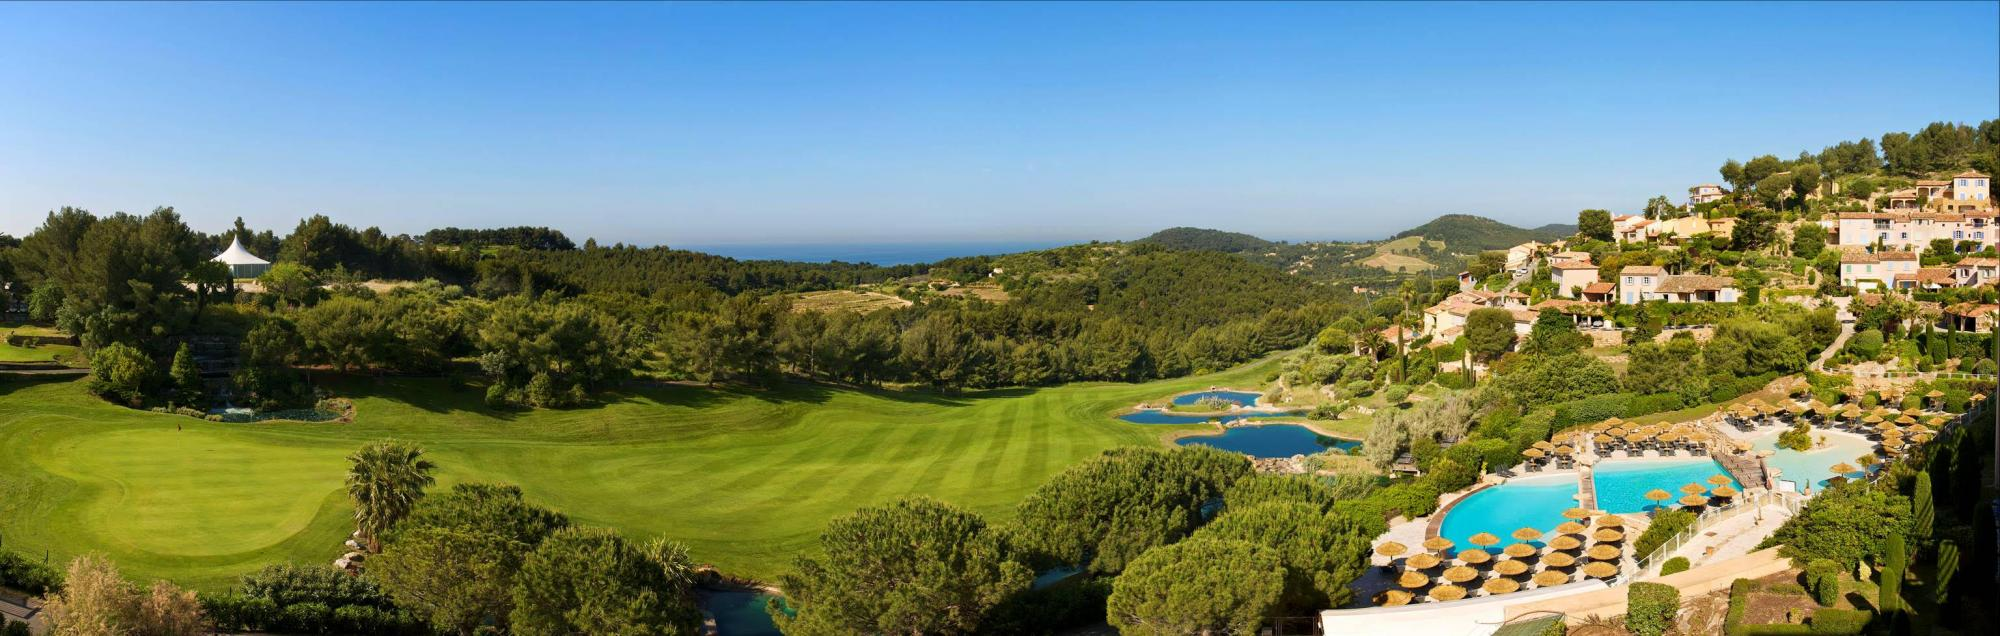 All The Golf Dolce Fregate Provence's scenic golf course in spectacular South of France.